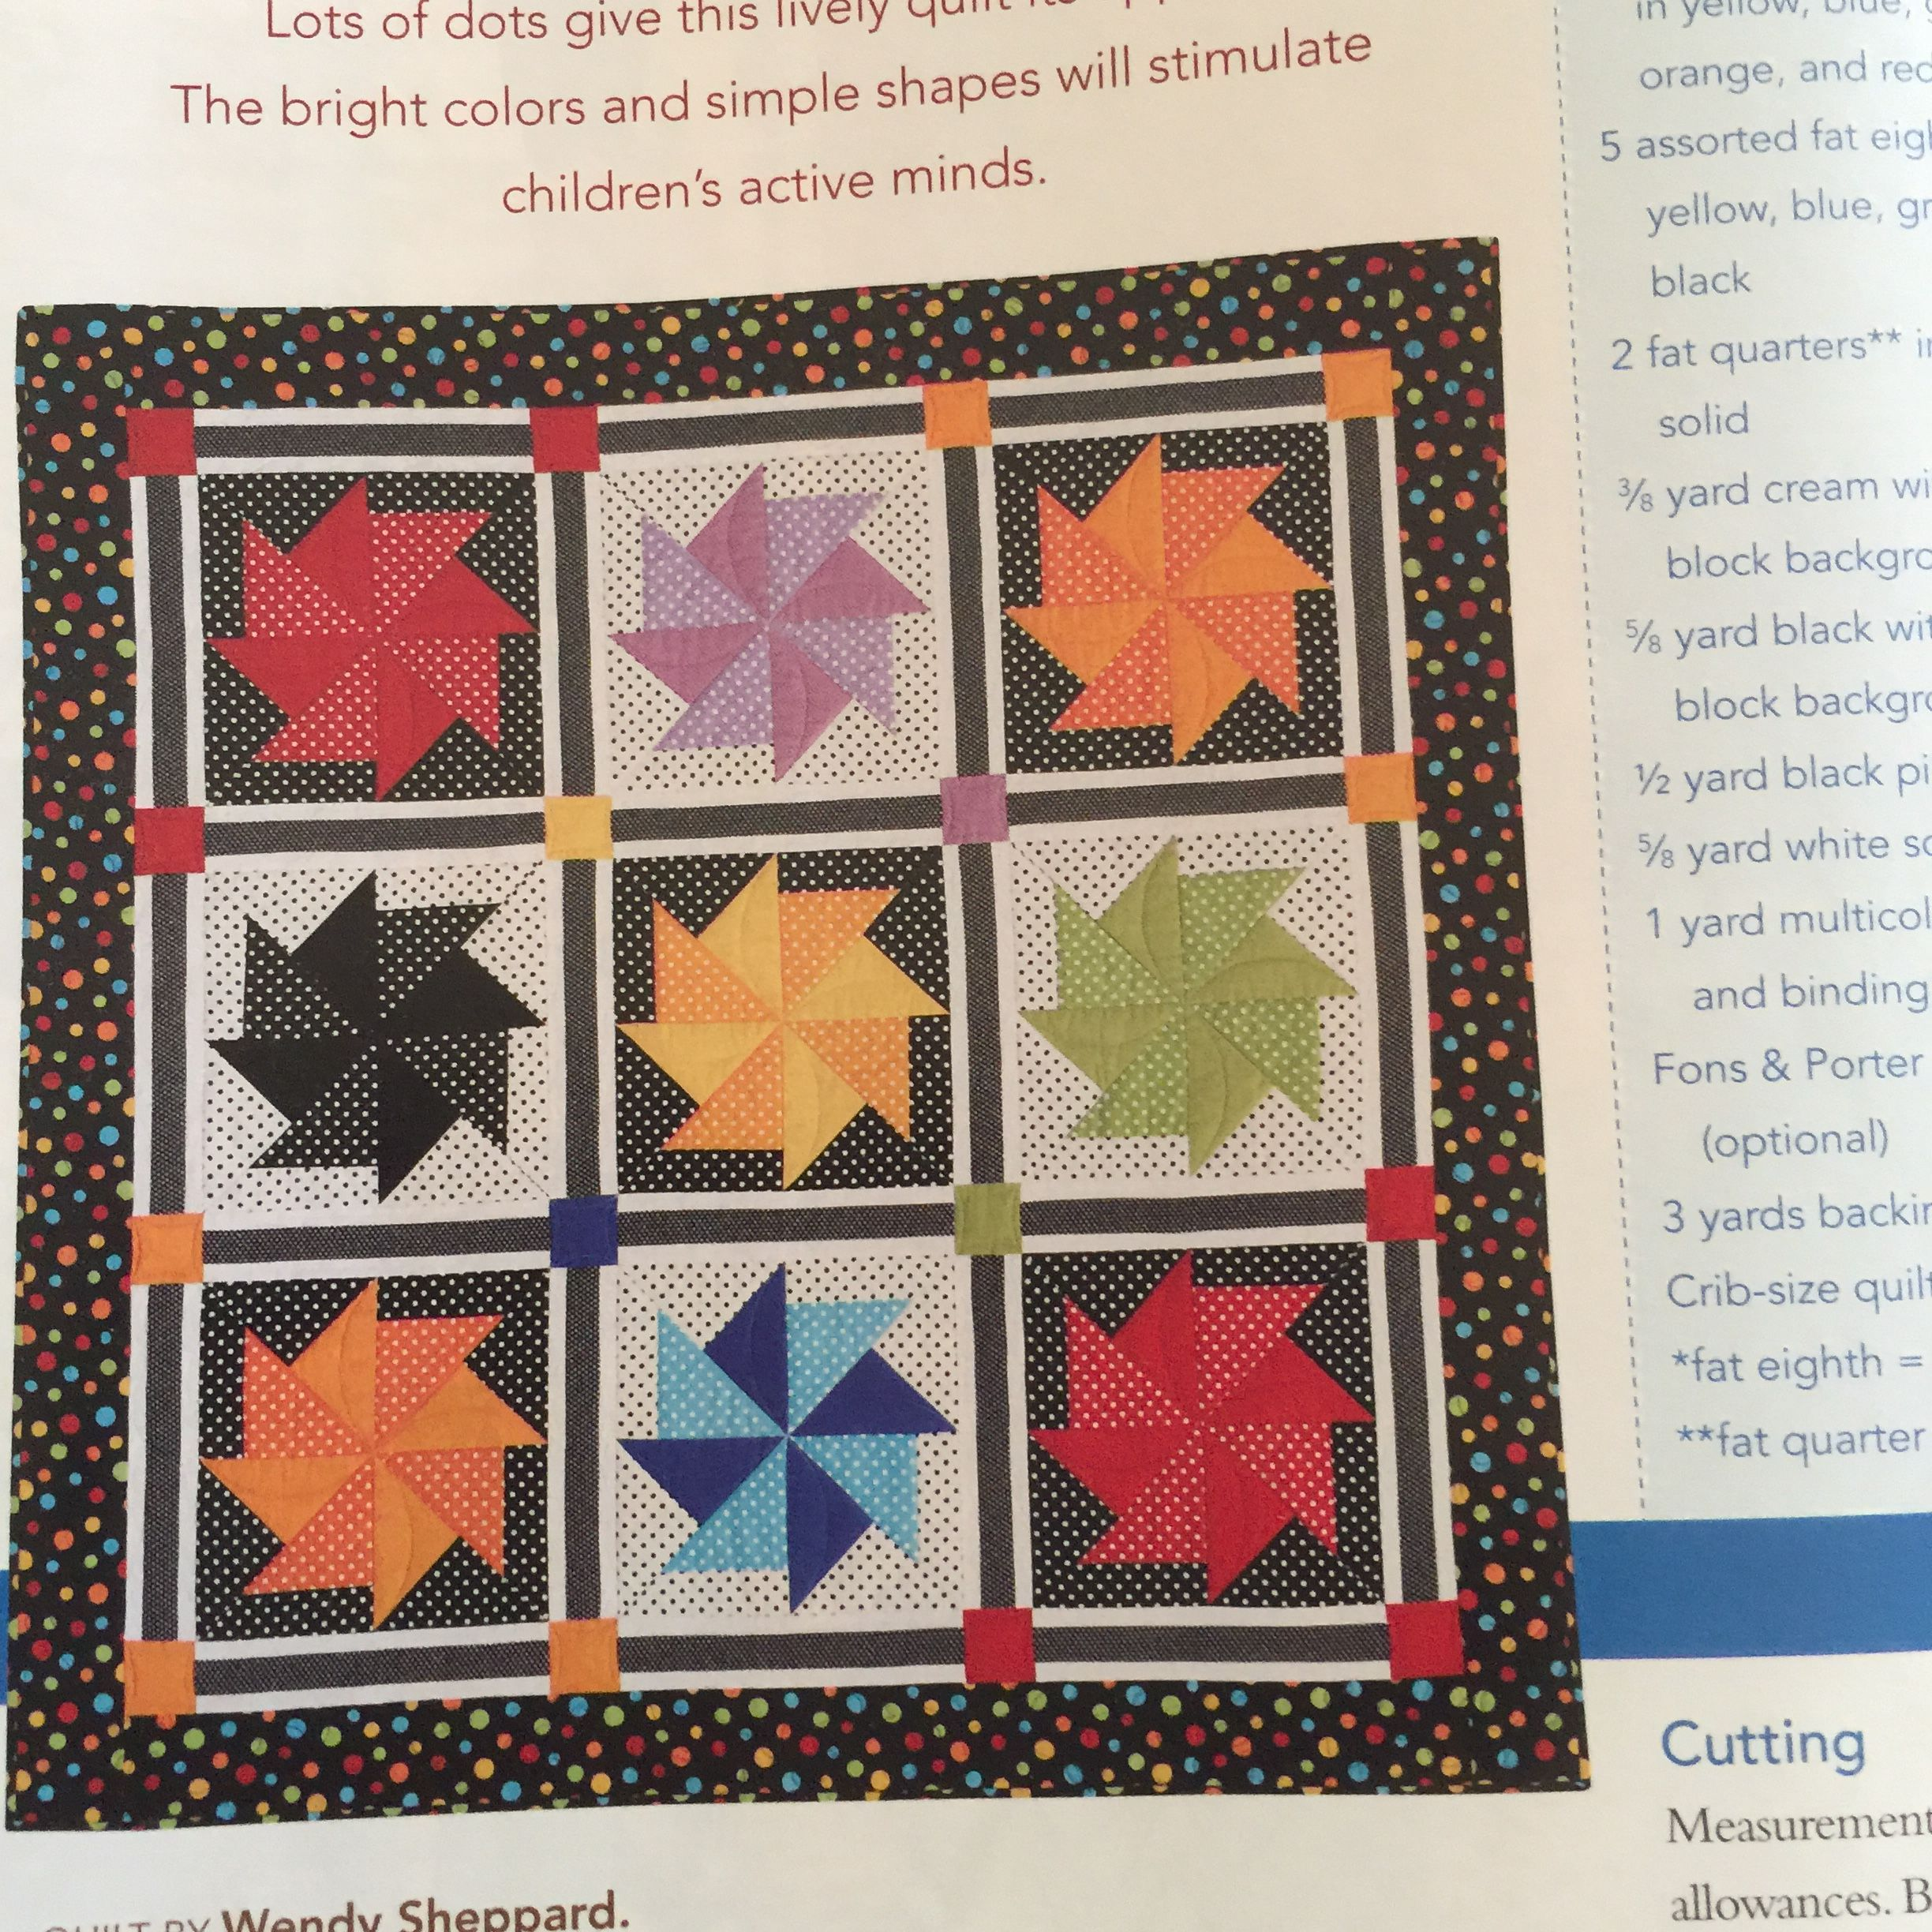 Pin By Teresa Estes On Quilt Ideas Simple Shapes Quilts Bright Colors